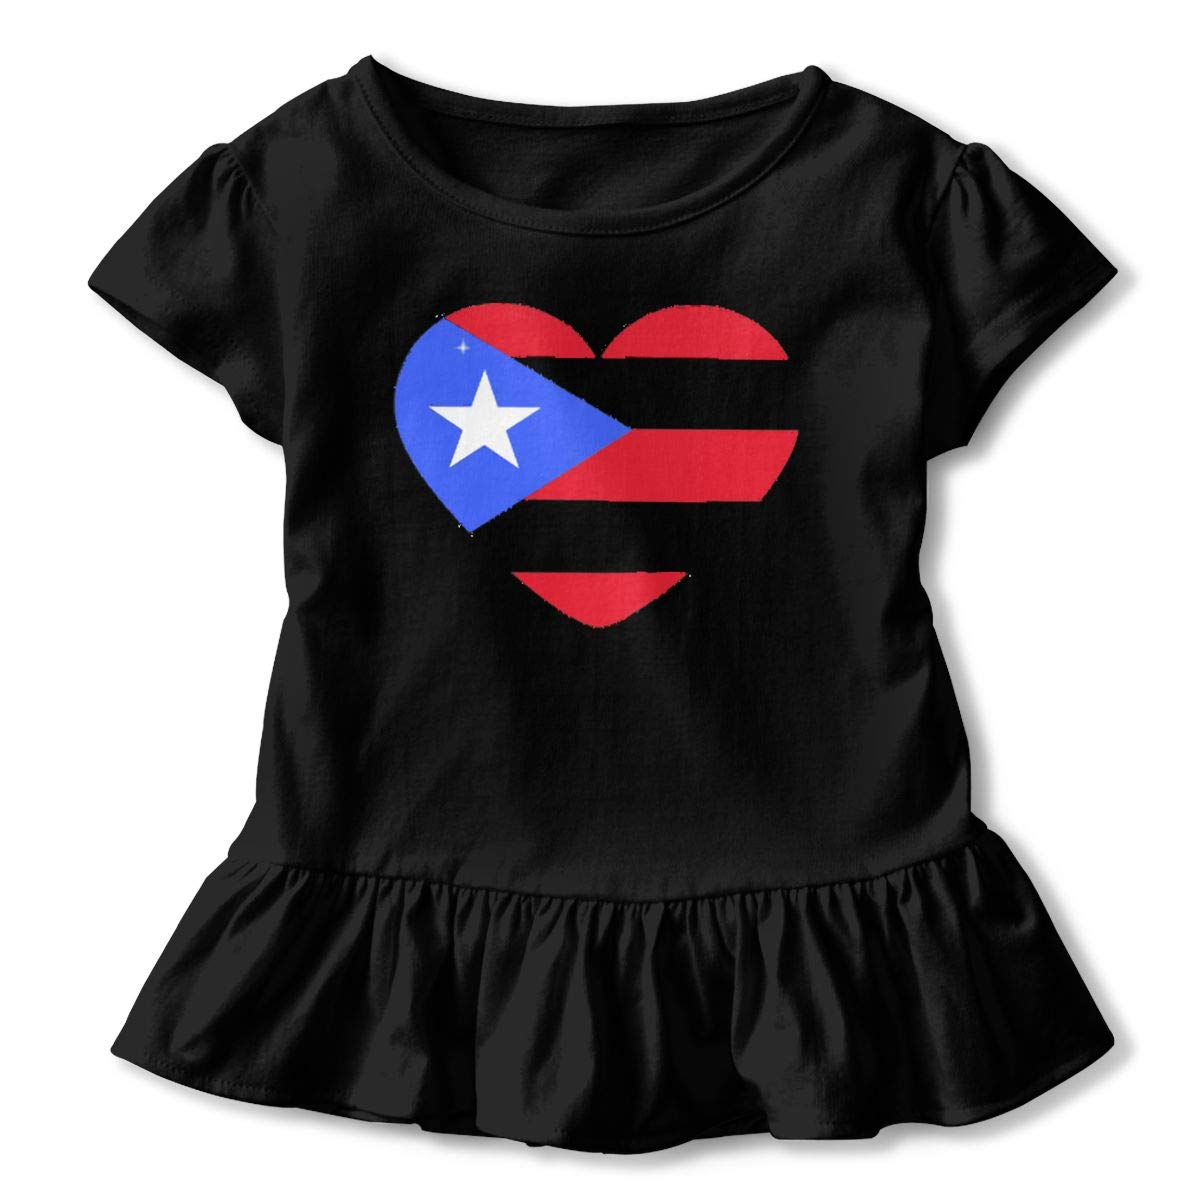 Puerto Rico Large Heart Flag Shirt Funny Little Baby Girls Flounced T Shirts Tee Shirts for 2-6T Kids Girls